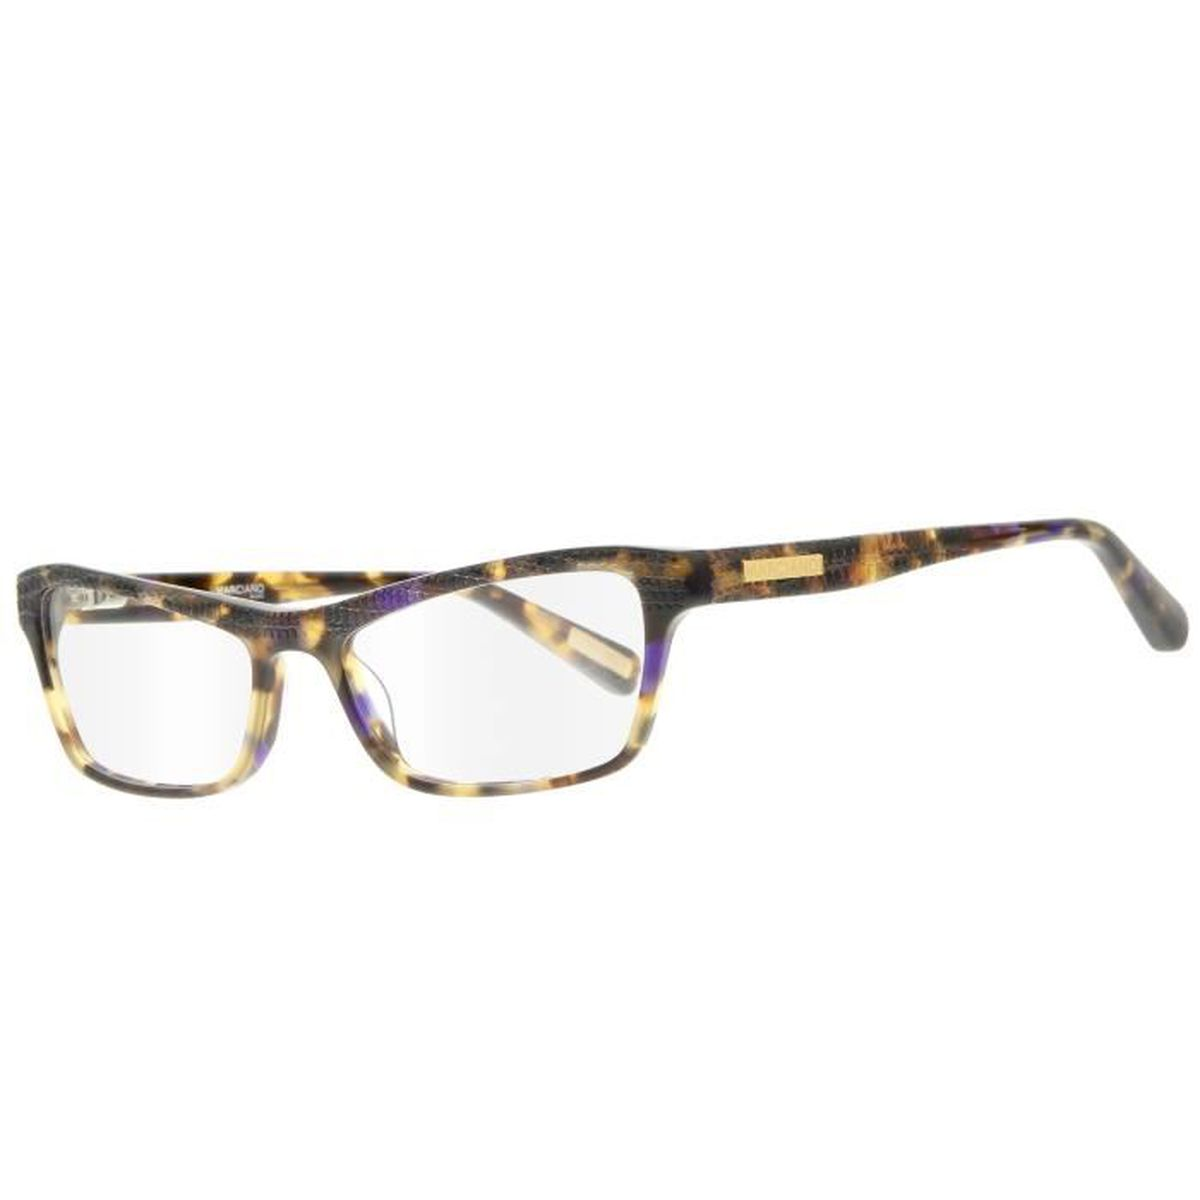 GUESS BY MARCIANO OPTICAL FRAMES GM0235 I64 - Achat   Vente lunettes ... e9ebe379adb3